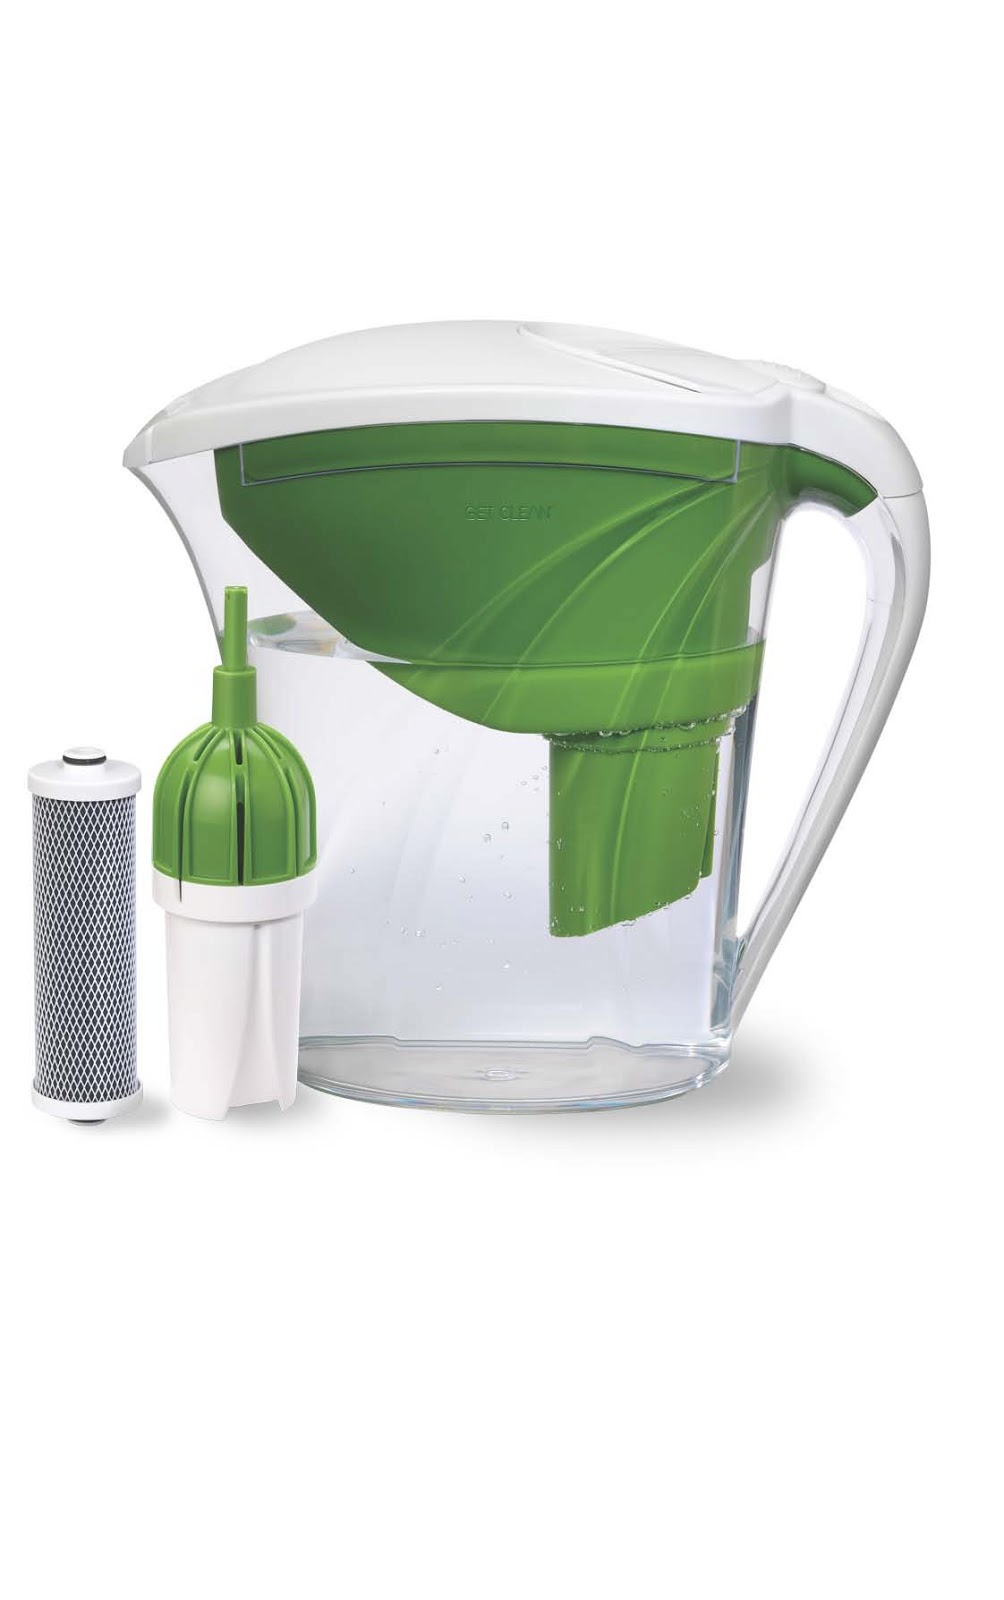 mobilewaterpitcher